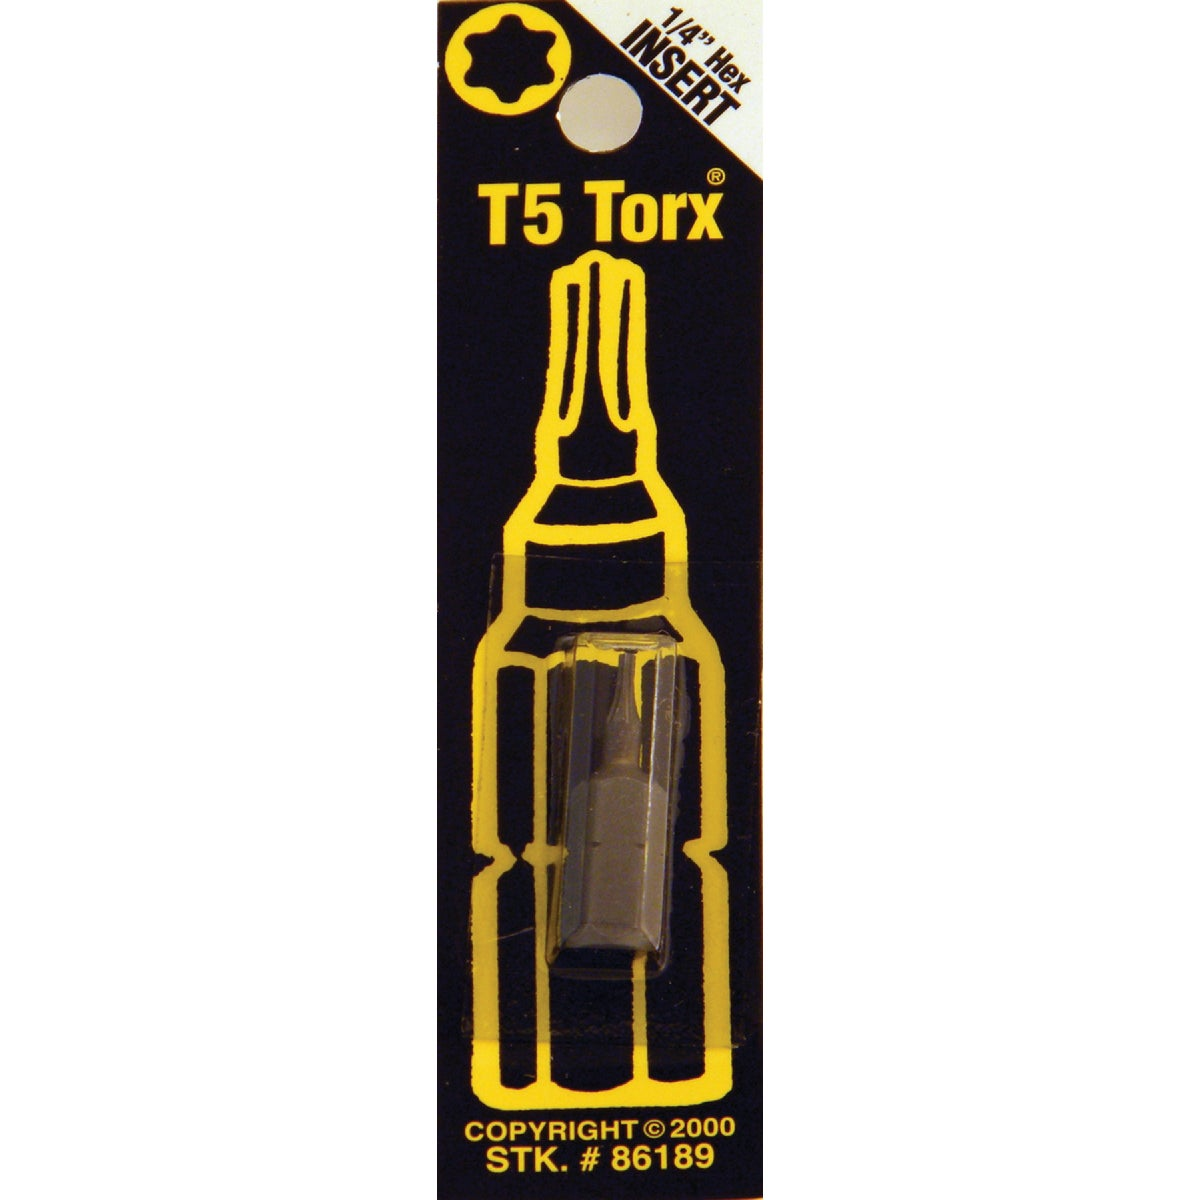 T5 TORX SECURITY BIT - 86189 by Bwt Inc